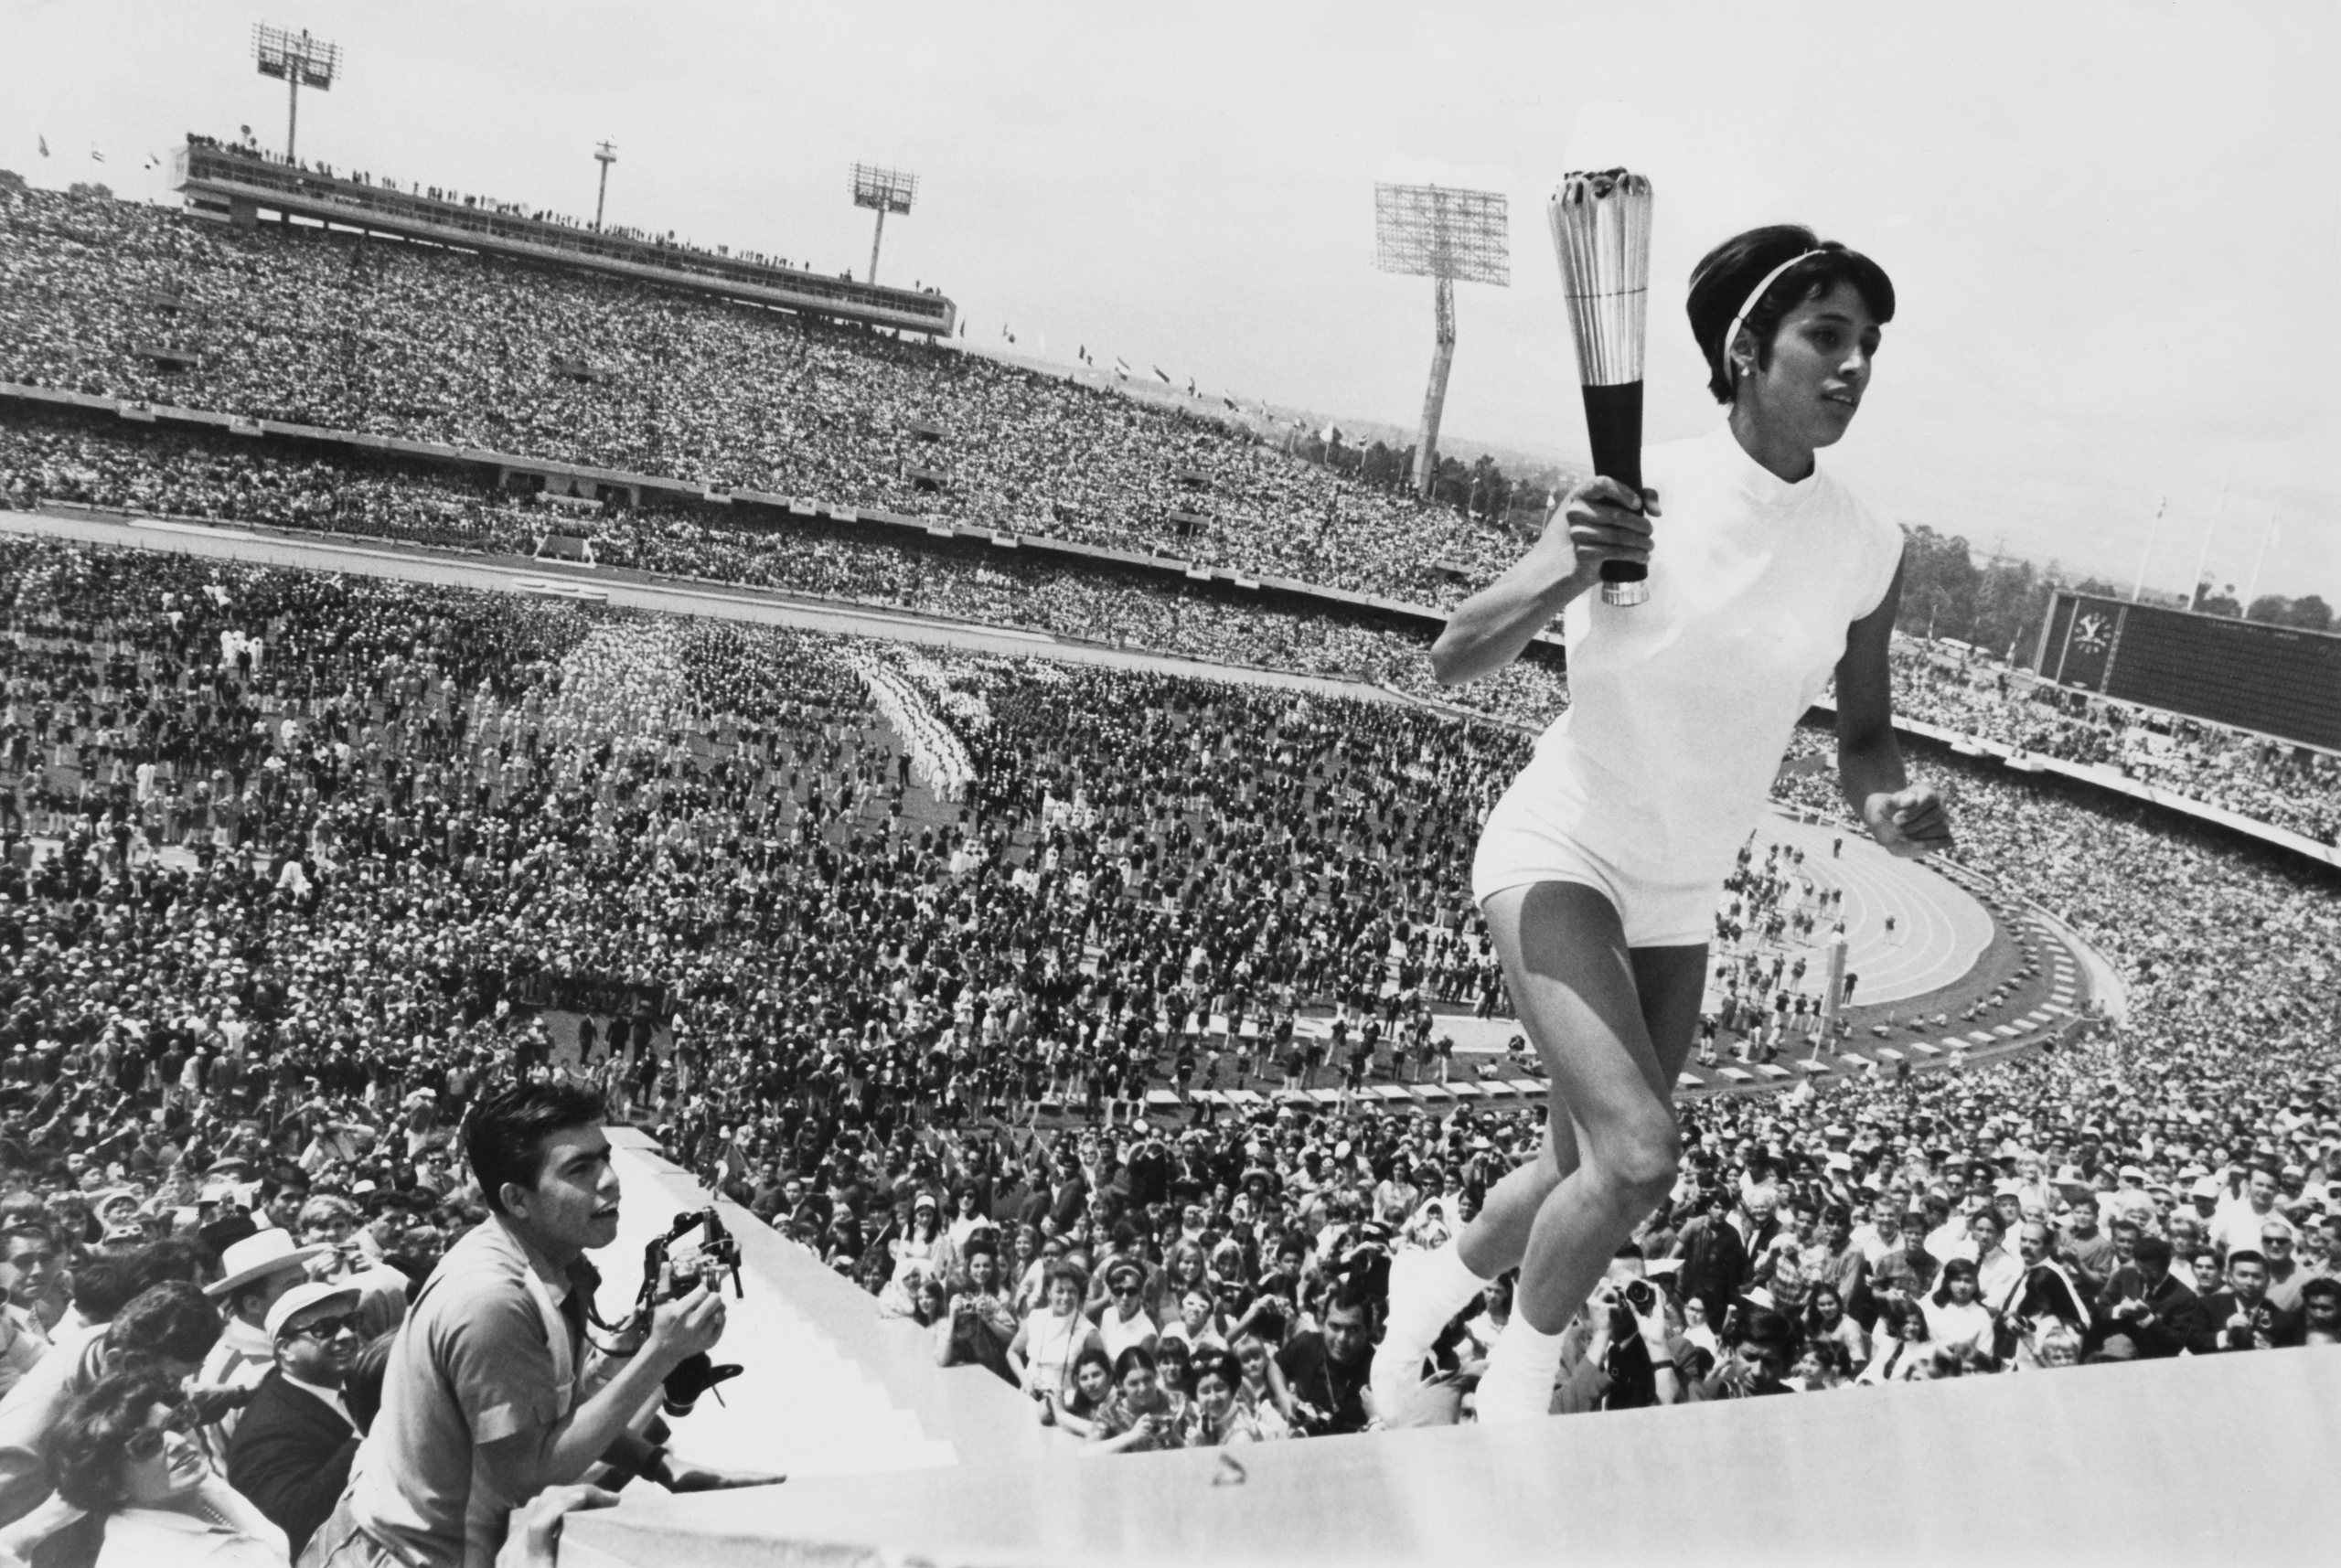 Mexican hurdler Enriqueta Basilio carries the Olympic torch to the cauldron during the opening ceremony of the 1968 Summer Olympics in Mexico City, Mexico, Oct. 12, 1968. The flame was lit in Olympia, Greece, and retraced the voyage of Columbus to the New World.